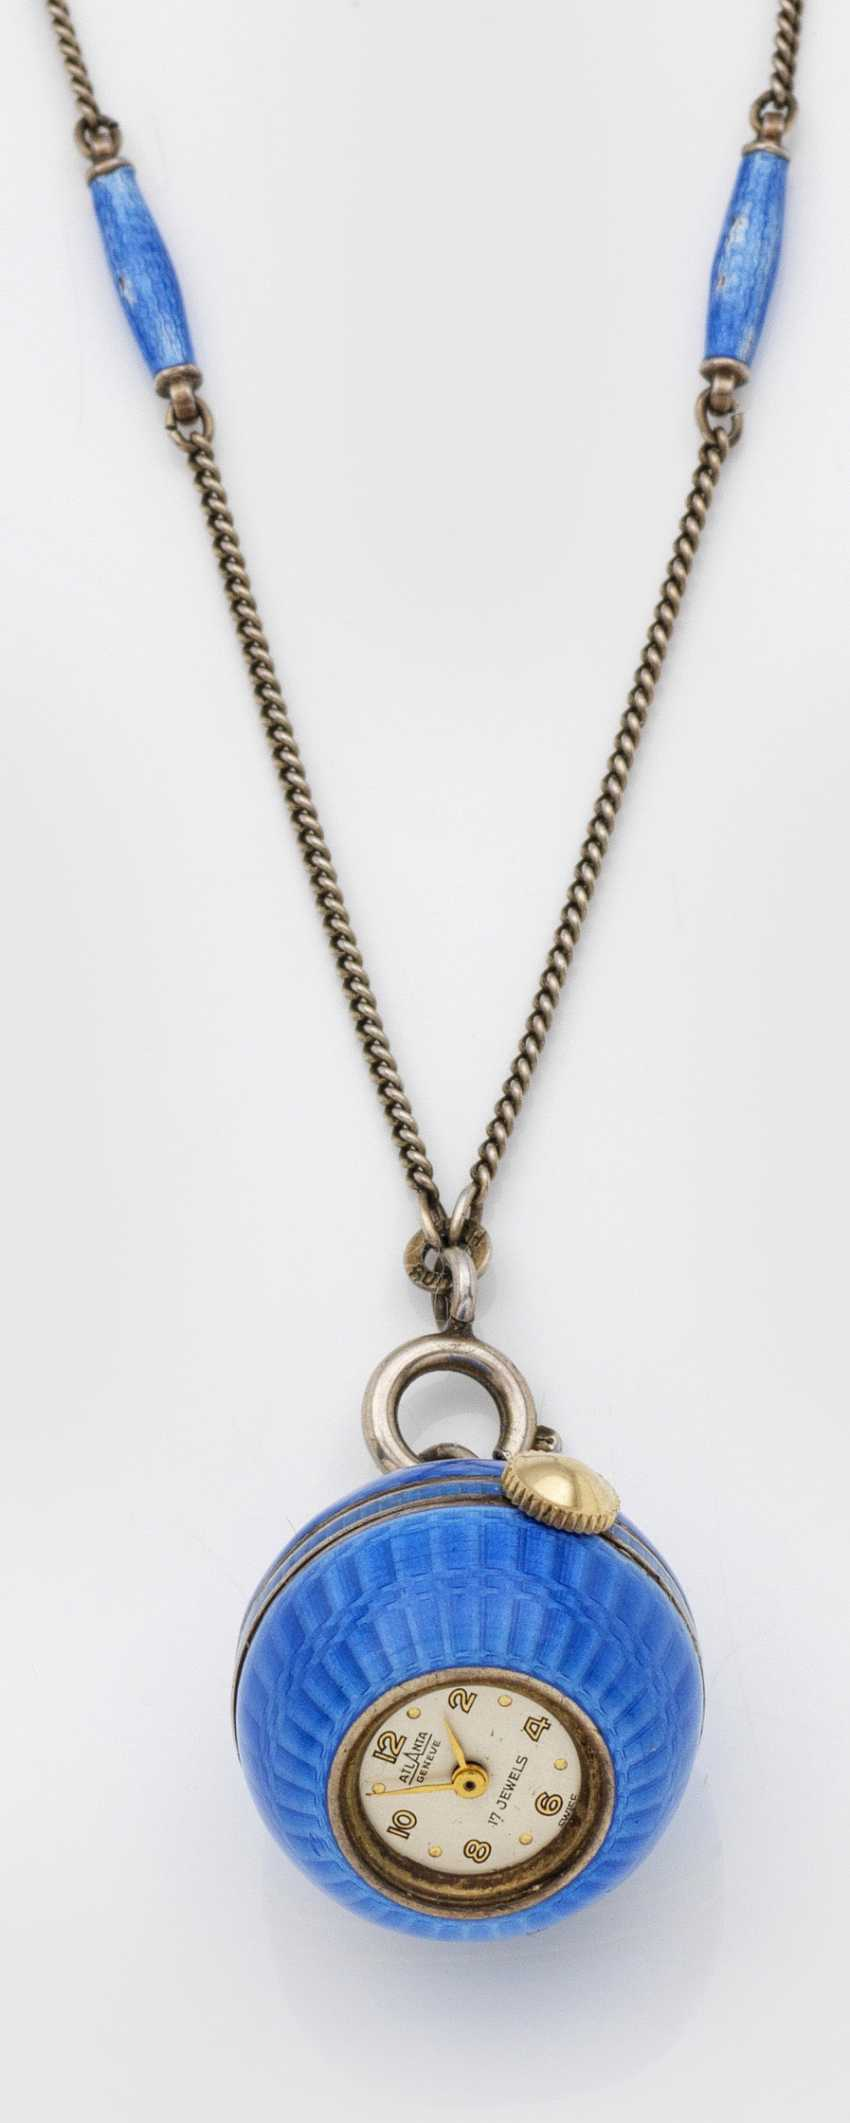 Sautoire with a spherical clock pendant from the 1930s - photo 1